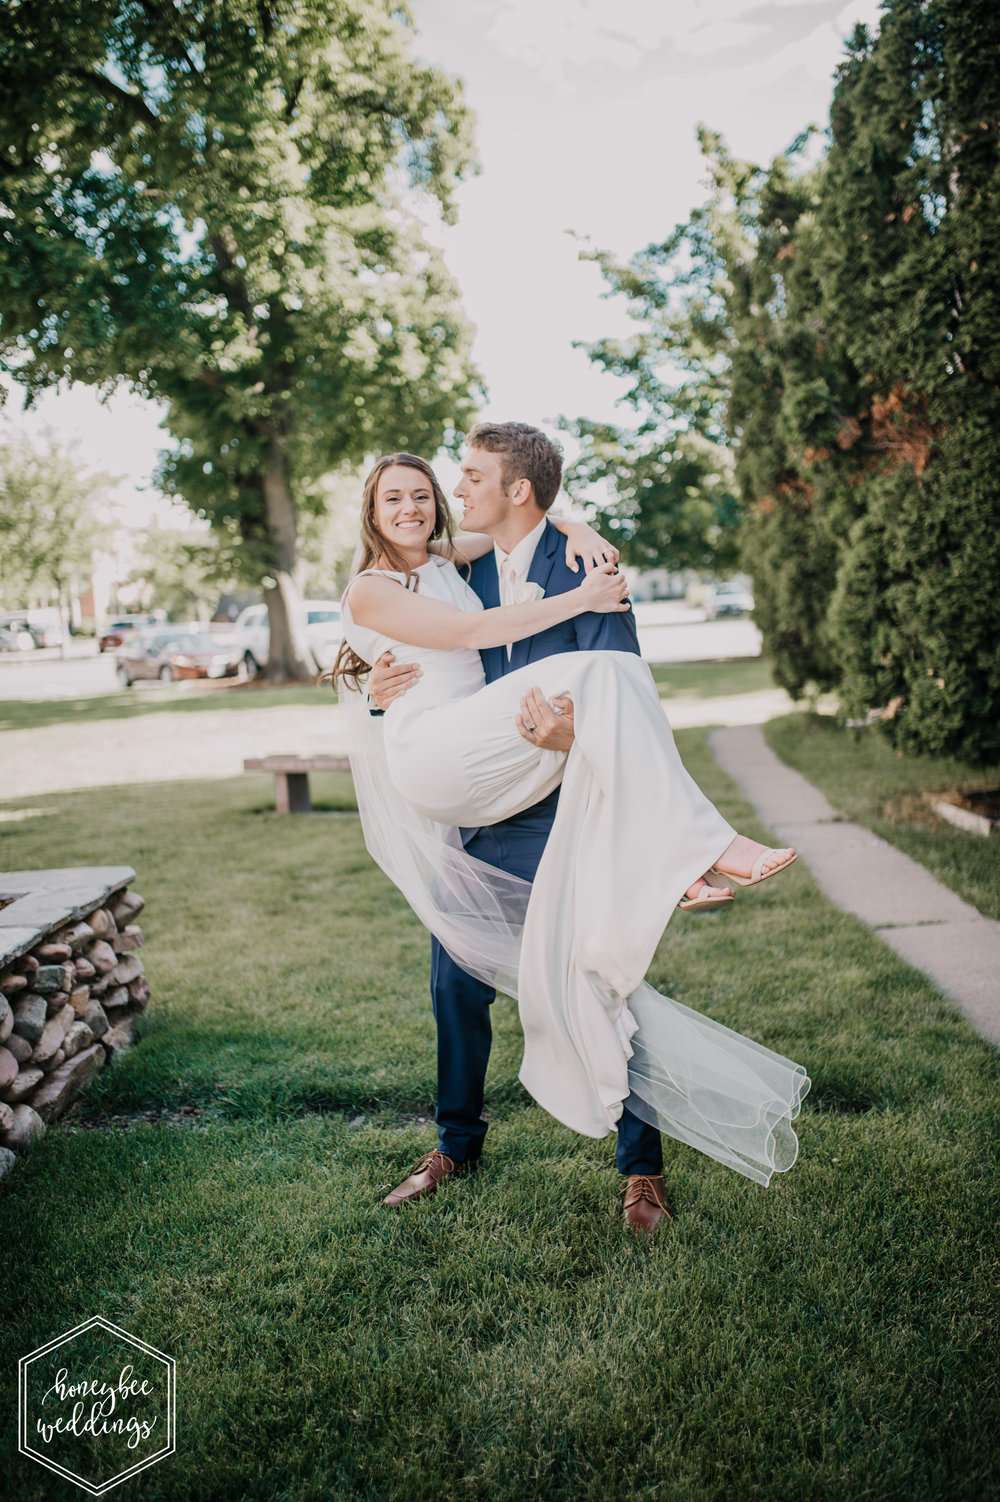 238 Montana Wedding Photographer_St. Francis Wedding_Tifani Zanto + Ryan Burke -6900.jpg